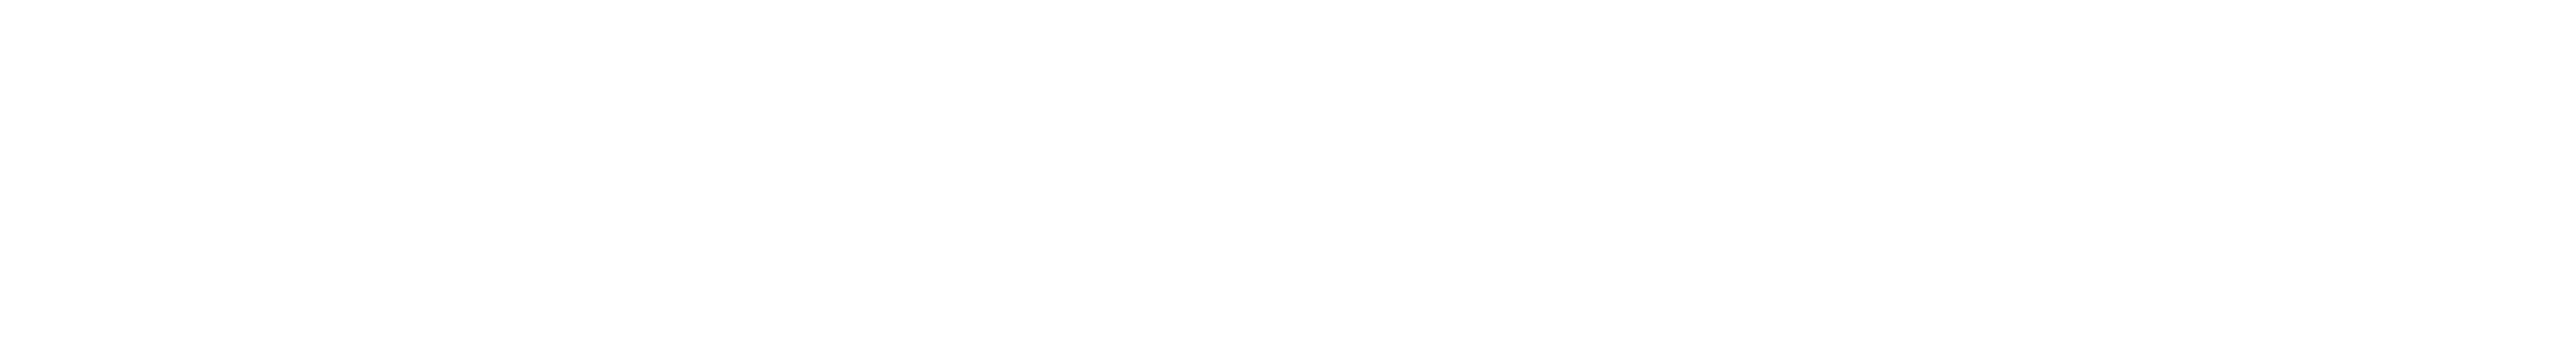 Sirius Group AG Logo Text